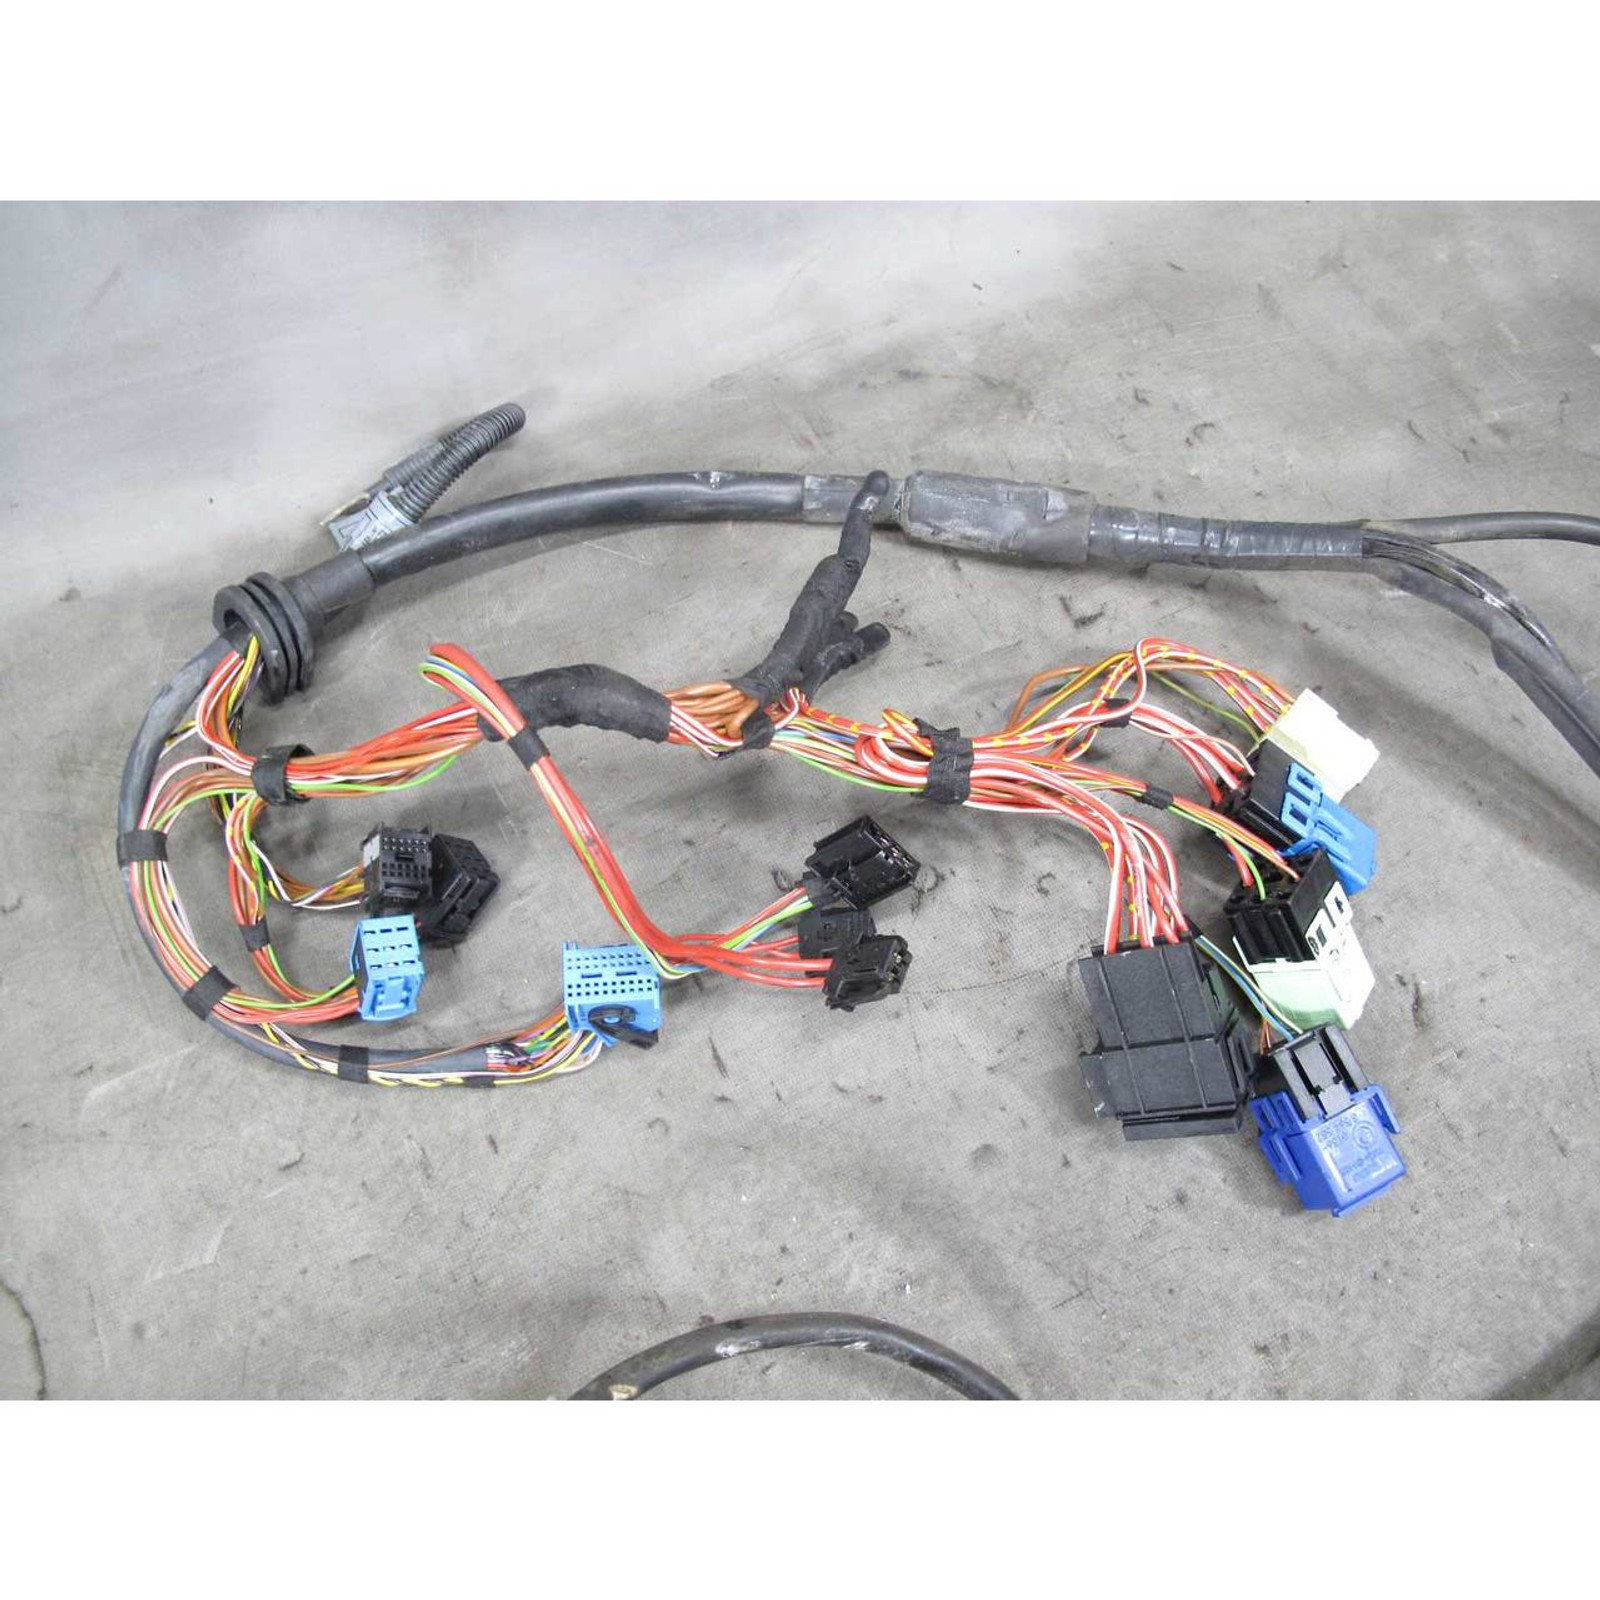 2001-2002 BMW E46 X-Drive M54 Automatic Transmission Wiring Harness on fall protection harness, nakamichi harness, amp bypass harness, safety harness, alpine stereo harness, pony harness, suspension harness, pet harness, obd0 to obd1 conversion harness, oxygen sensor extension harness, battery harness, electrical harness, engine harness, radio harness, maxi-seal harness, cable harness, dog harness,